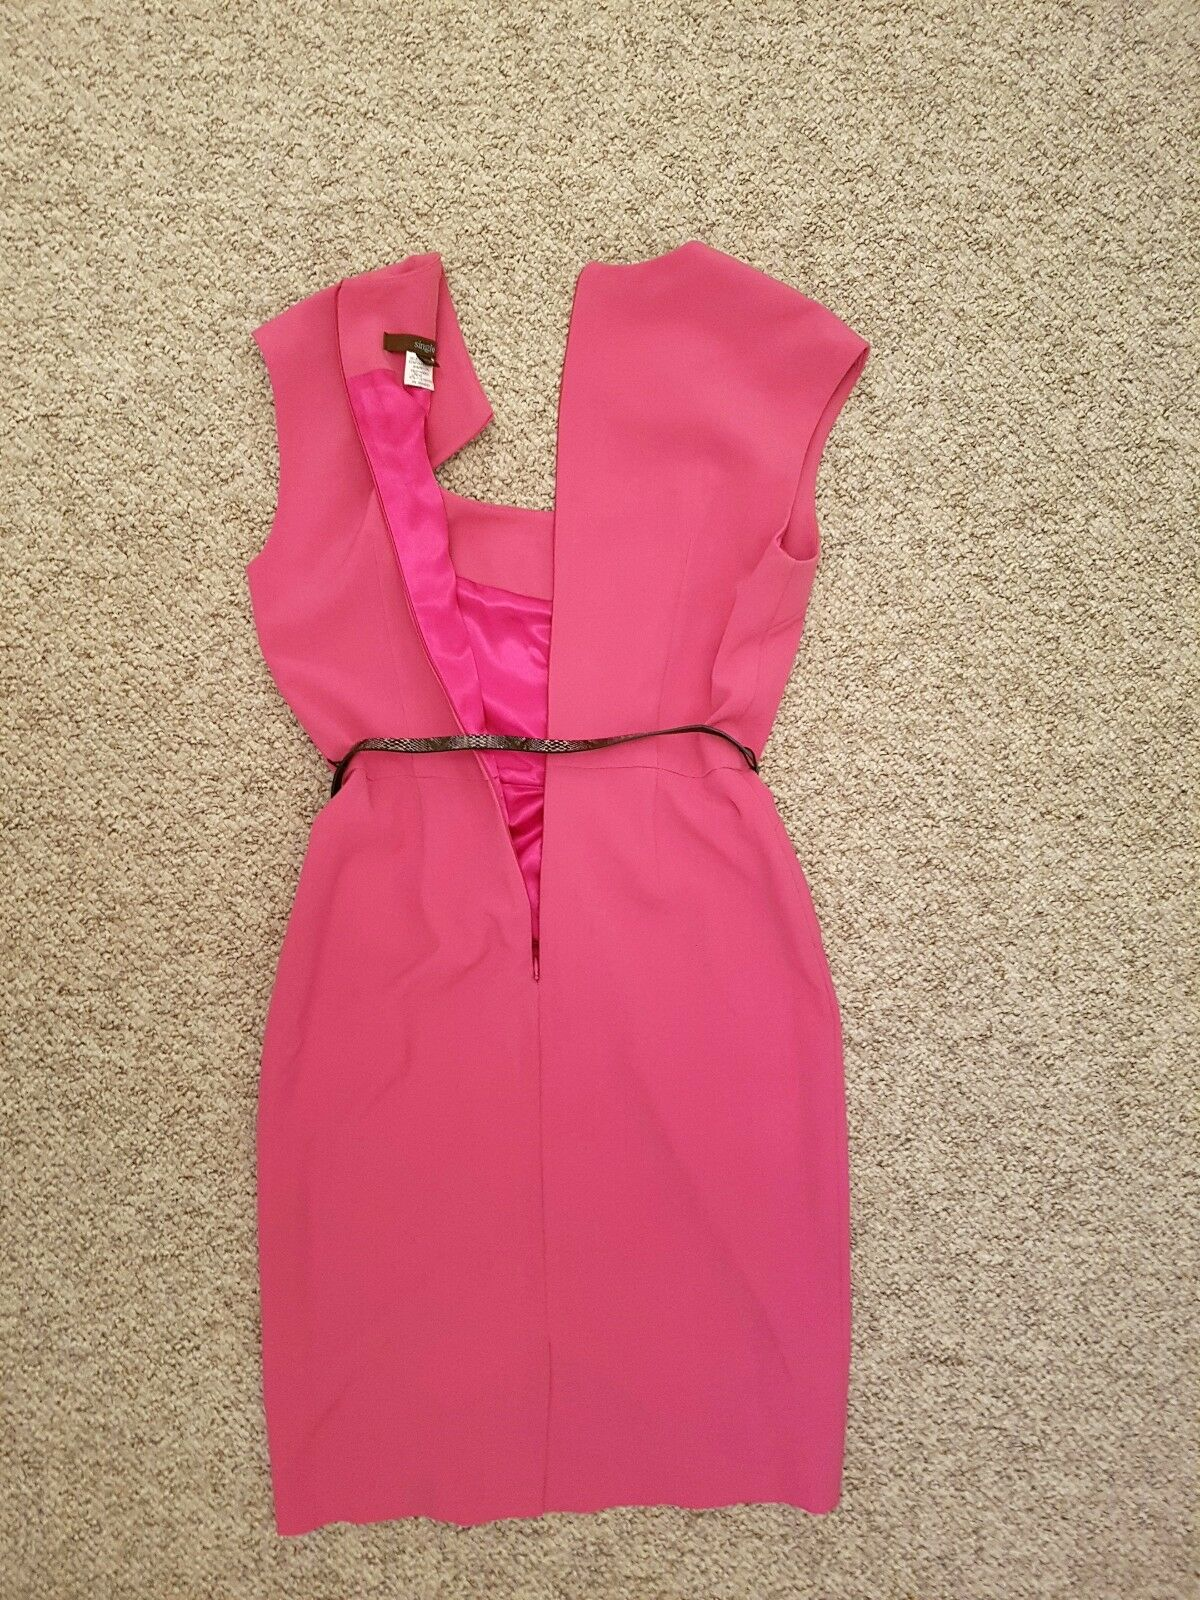 Rose Fitted Unique TailoRouge Wiggle Crayon Robe Unique Fitted 8 c37b46